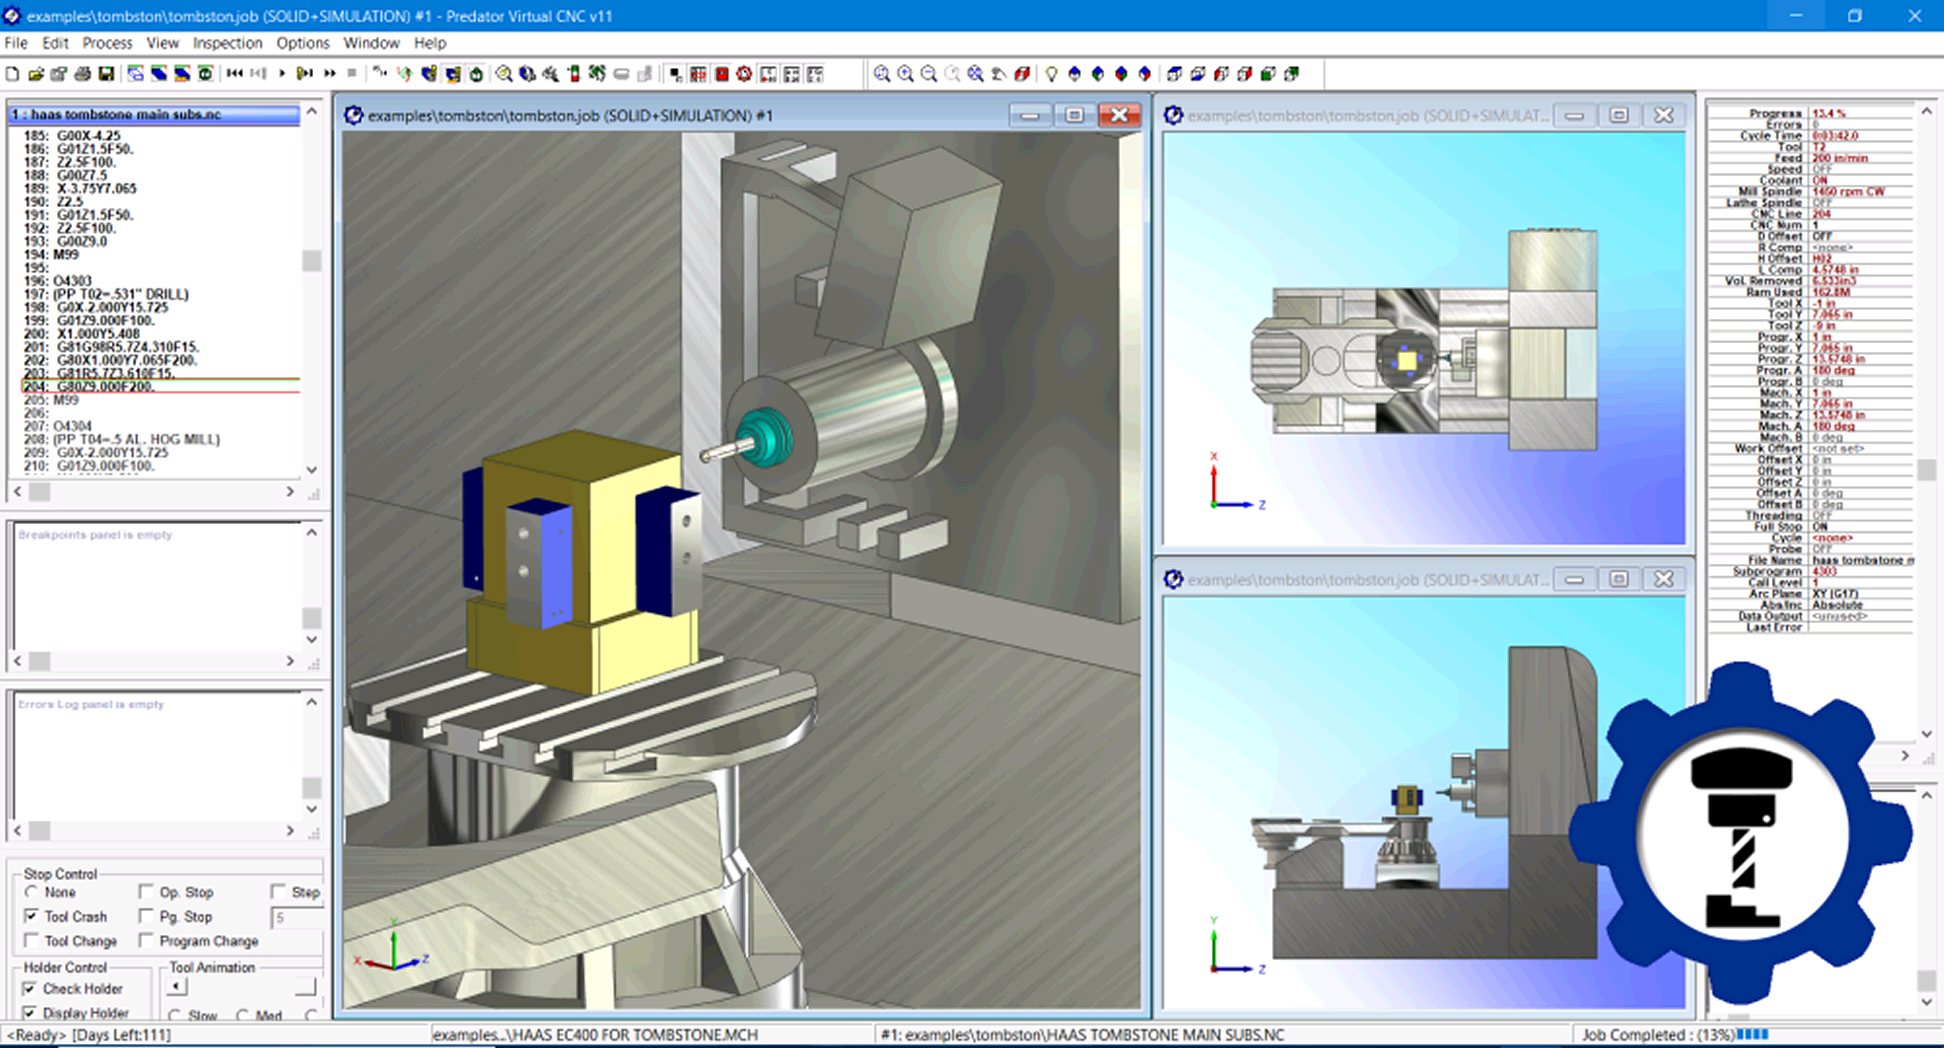 Predator Virtual CNC software